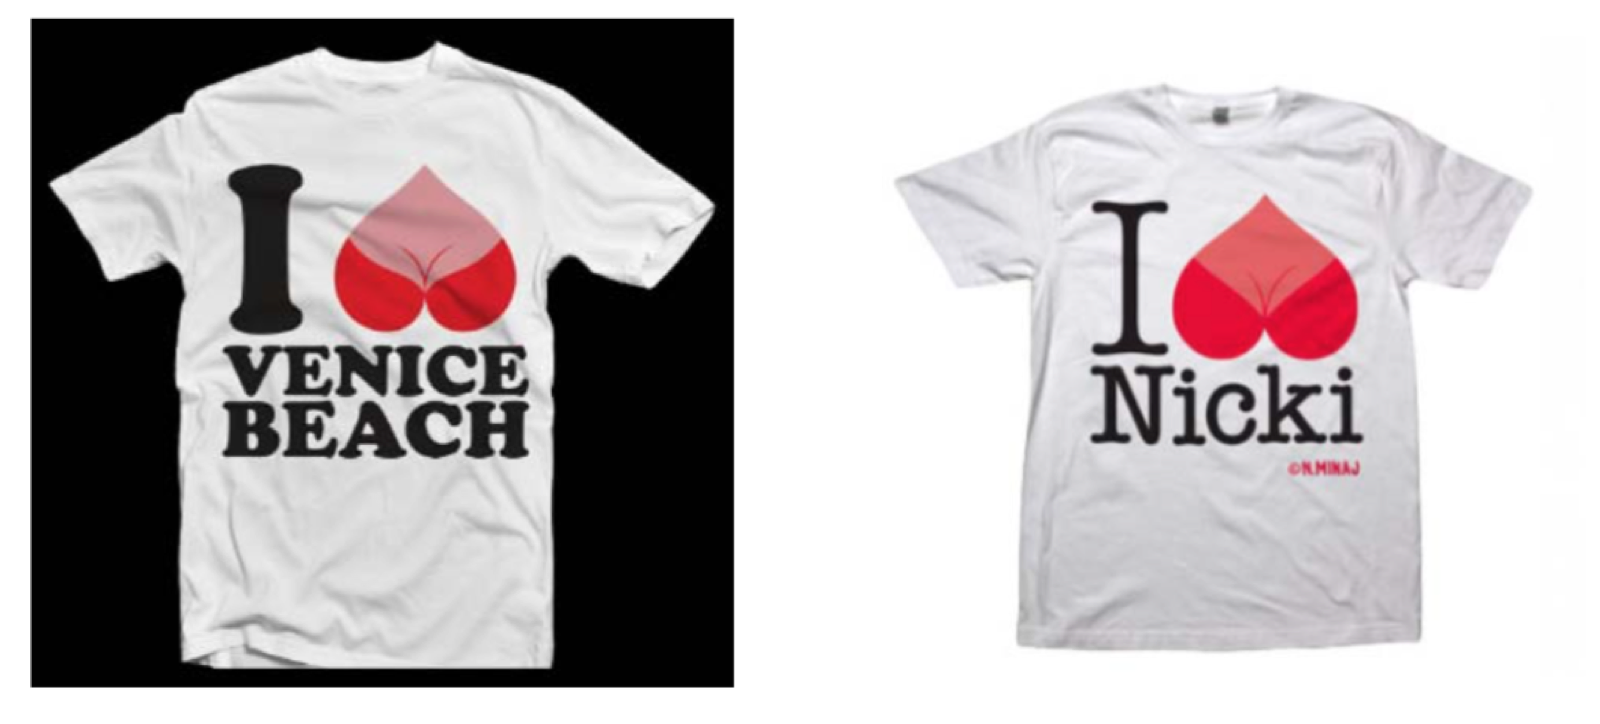 Simon's tee (left) & Minaj/Universal's merch (right)